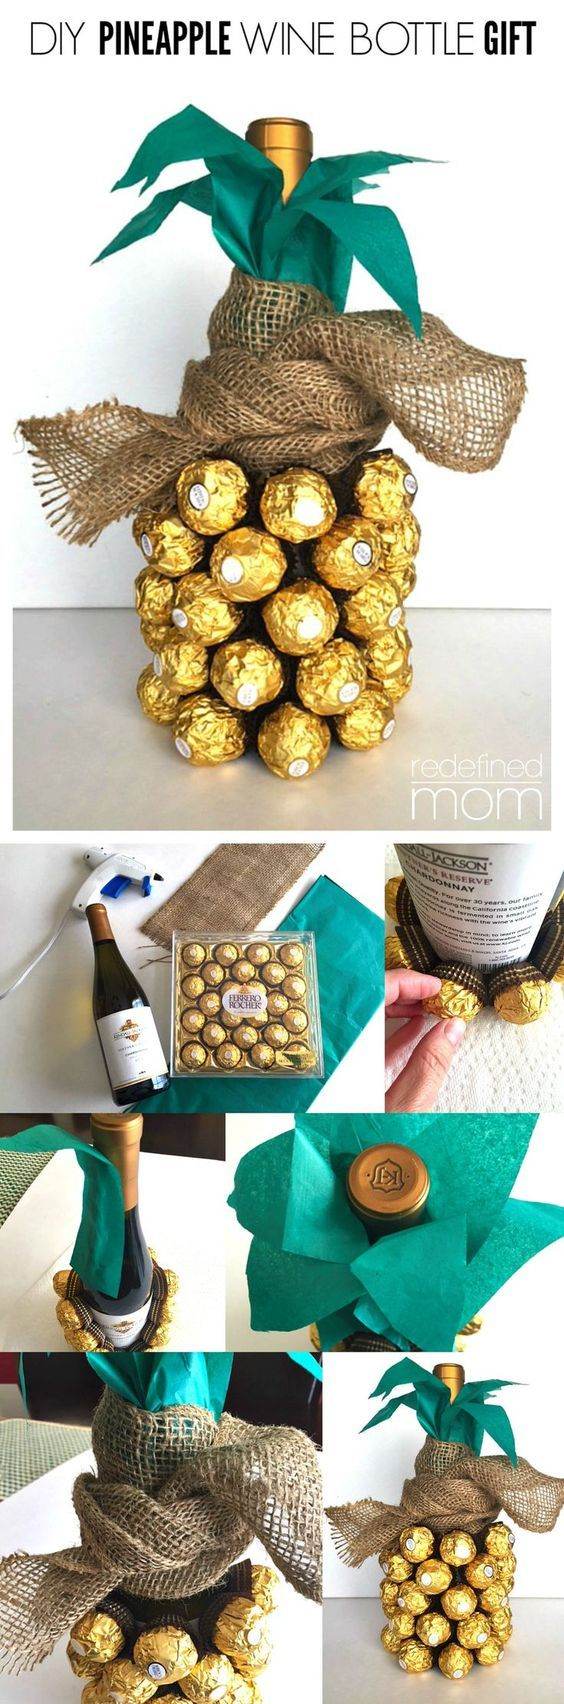 Don't show up to a party empty-handed!  Grab a tasty bottle of wine and create this pineapple-inspired gift wrap to make your gift really shine!